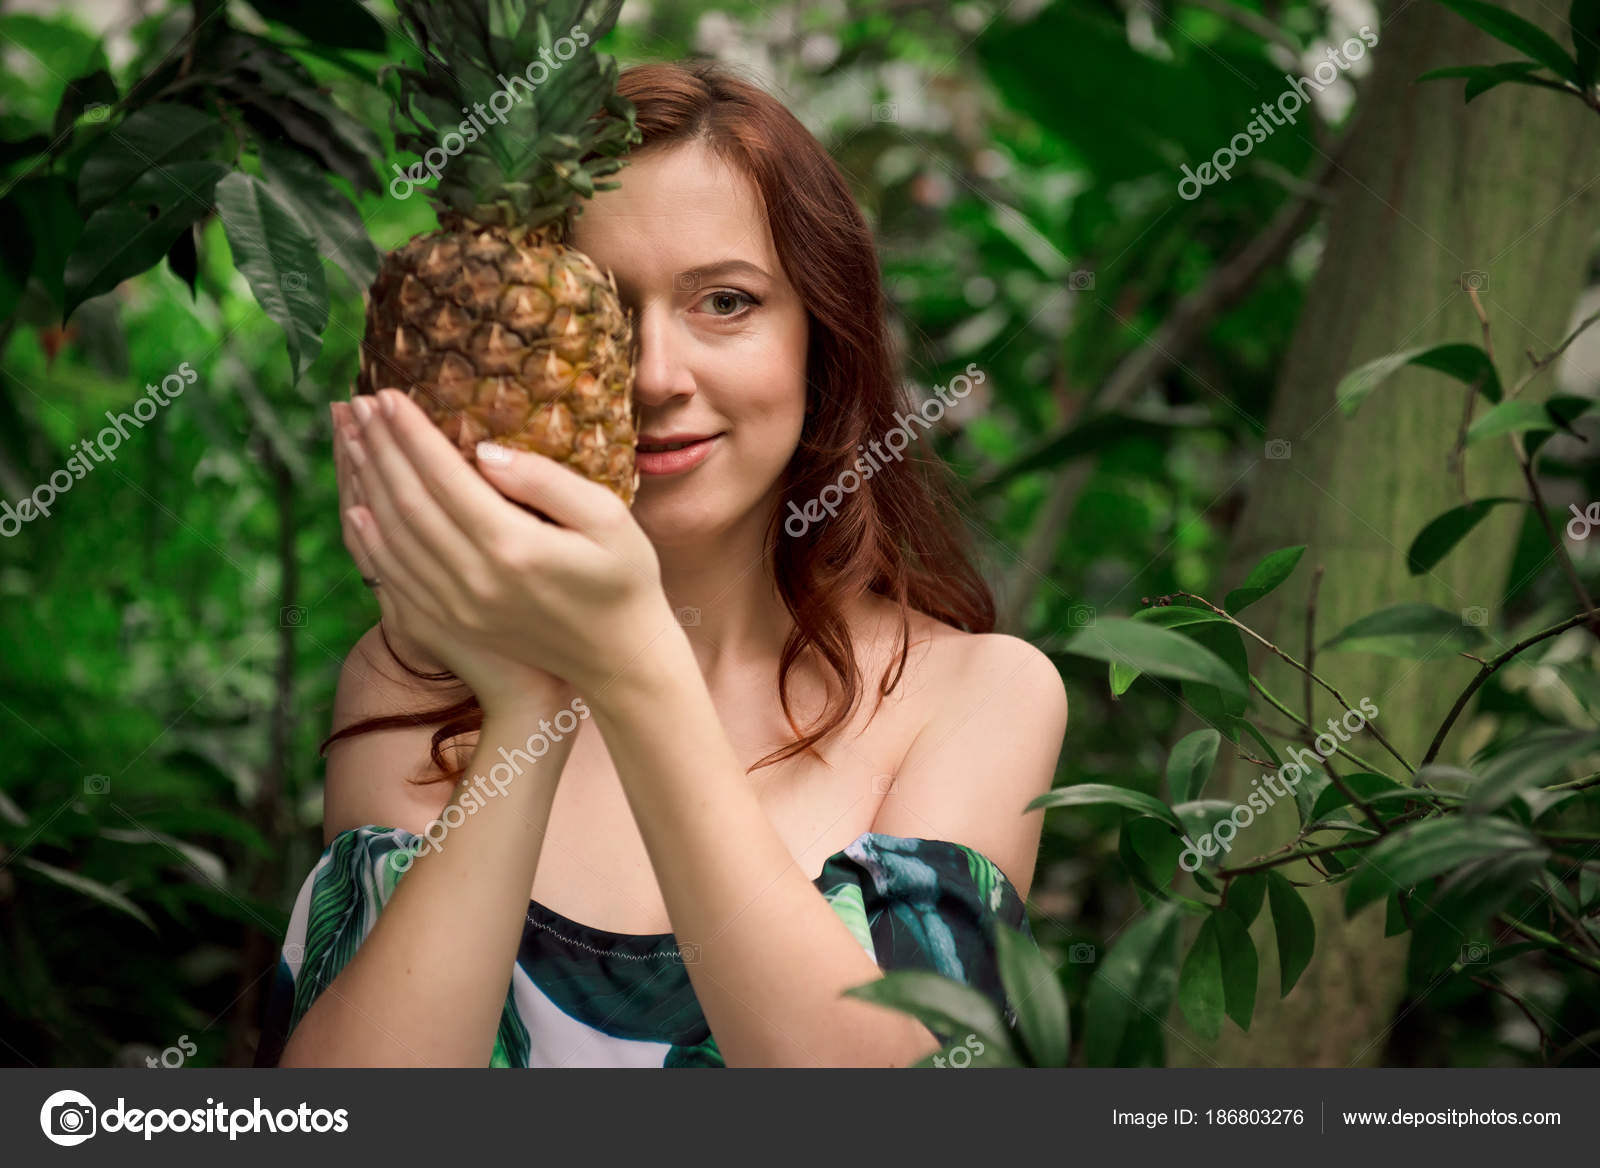 d07f705a62f41 Beautiful young caucasian woman with long red hair and bare shoulders,  holding a pineapple in her hands high up,hiding half of a face at tropical  forest.